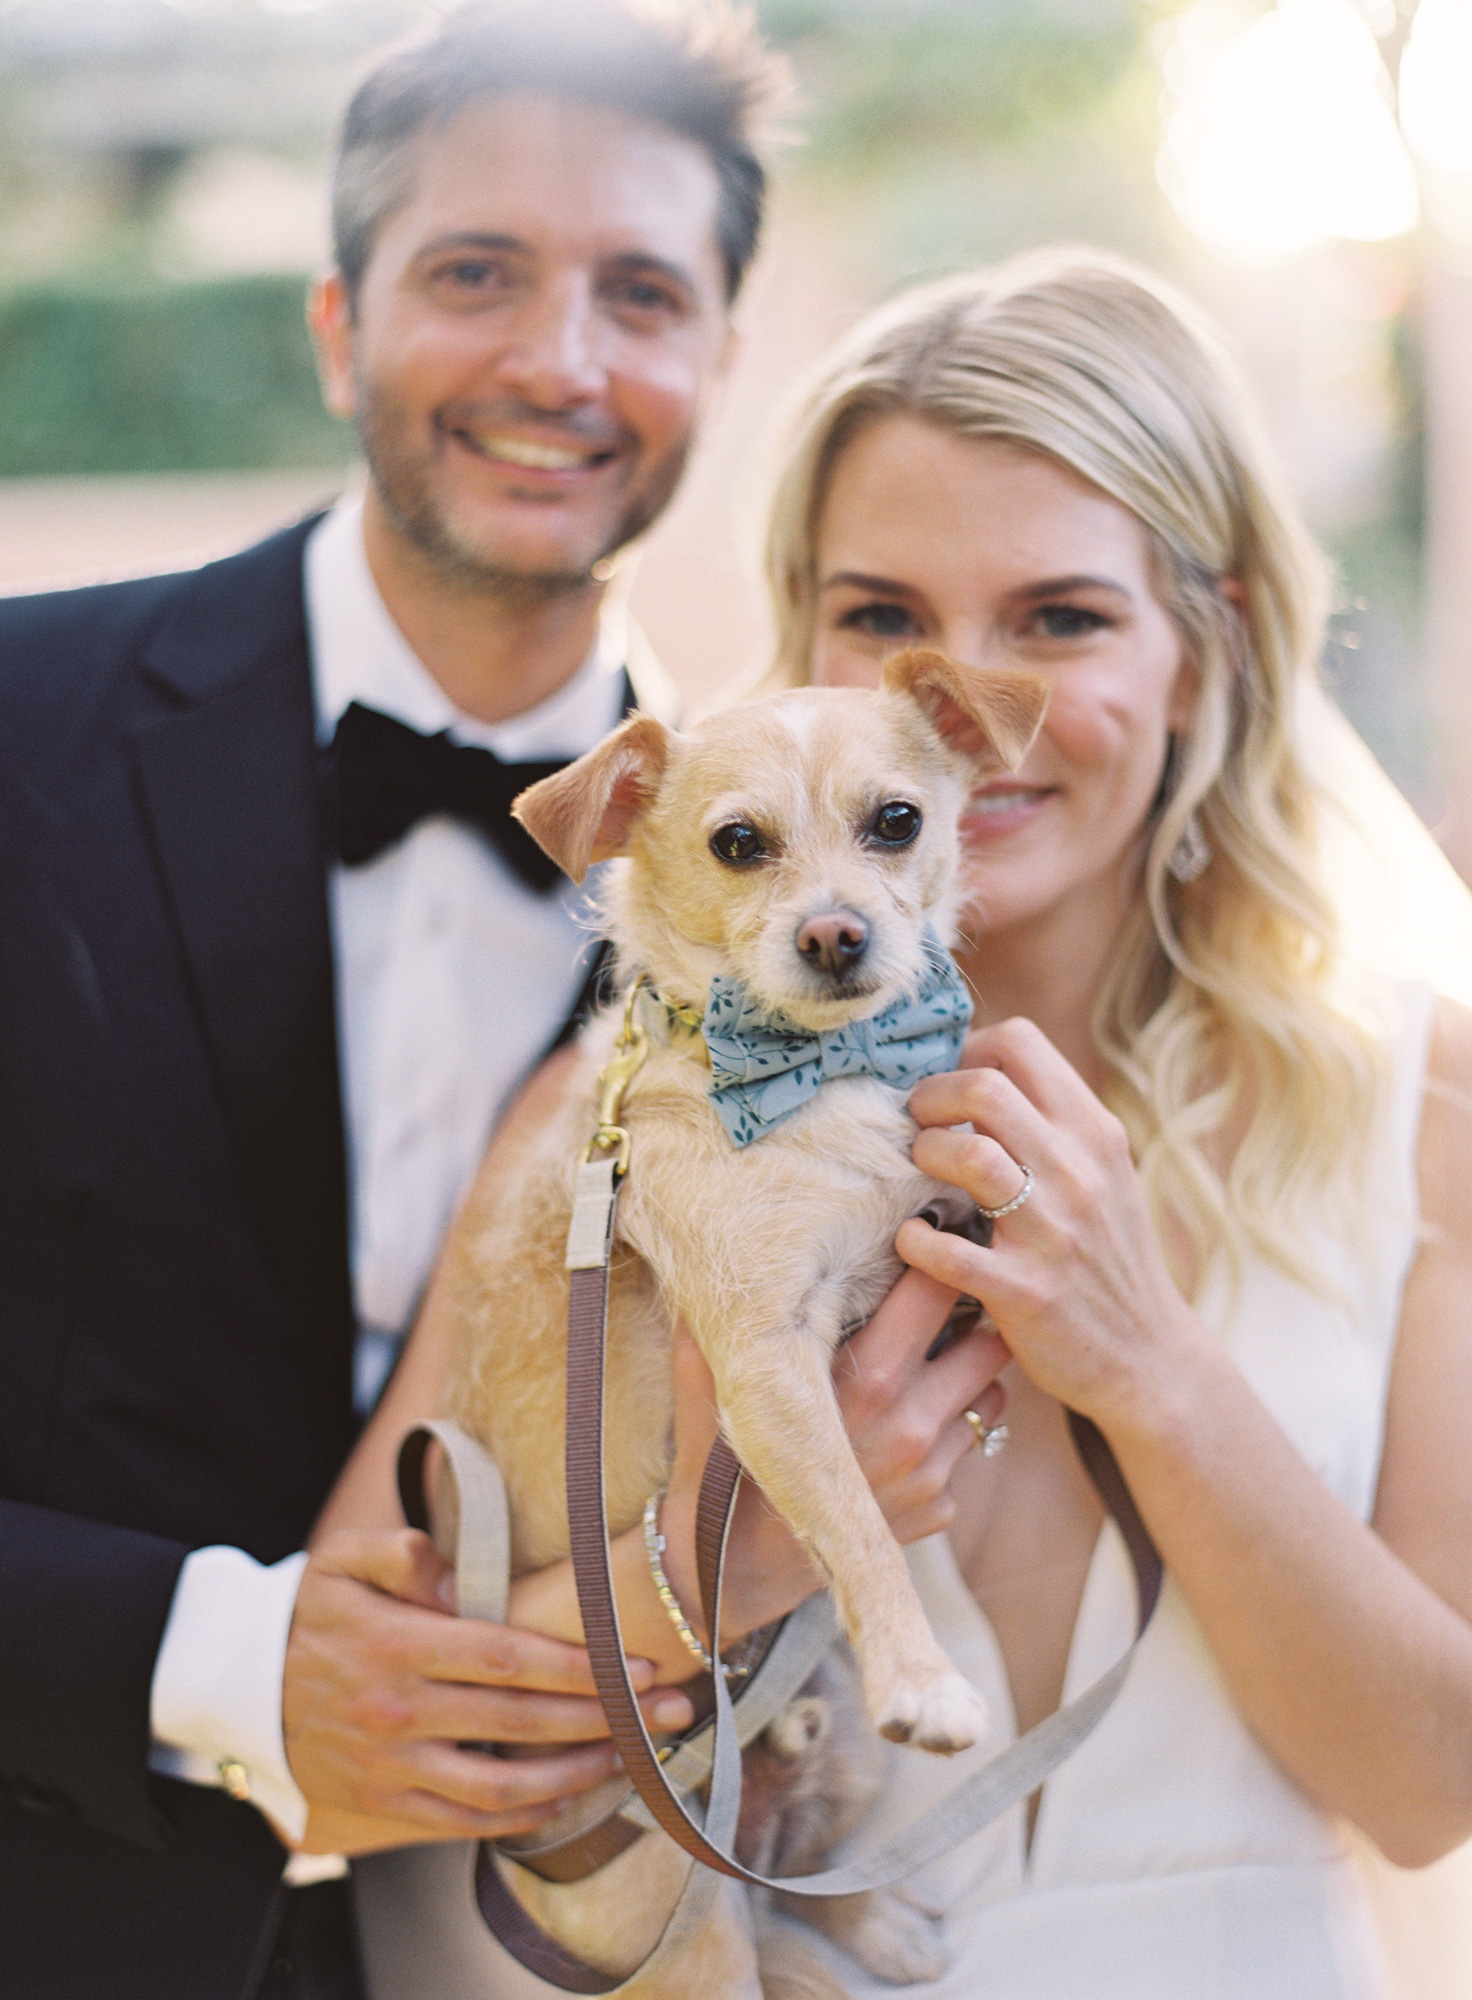 wedding couple holding dog with blue bow-tie